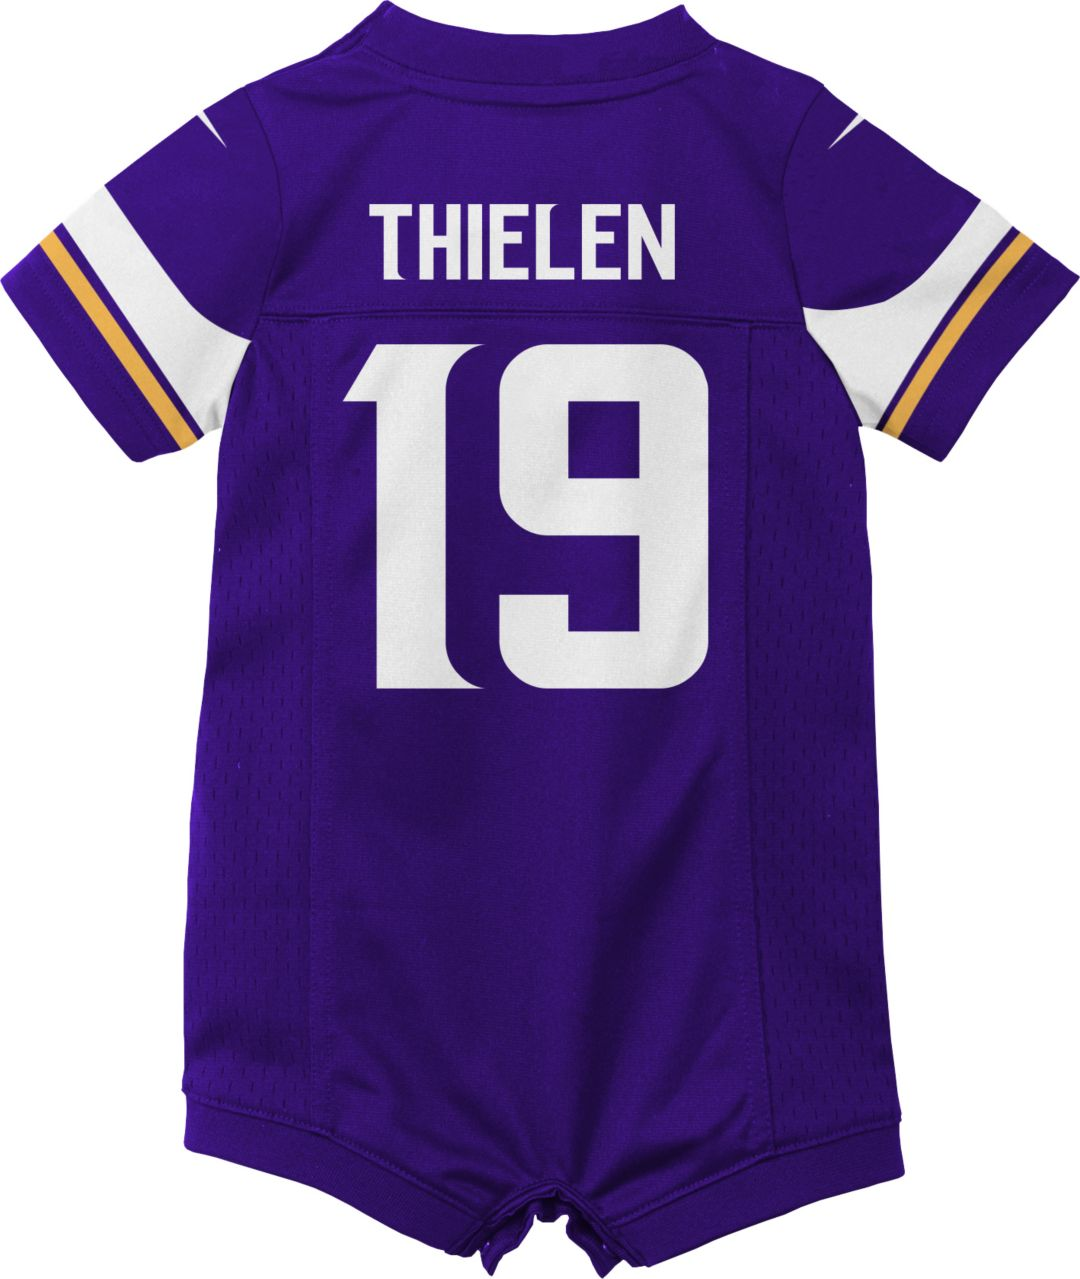 reputable site c5d5f a7631 Nike Infant Minnesota Vikings Adam Thielen #19 Romper Jersey